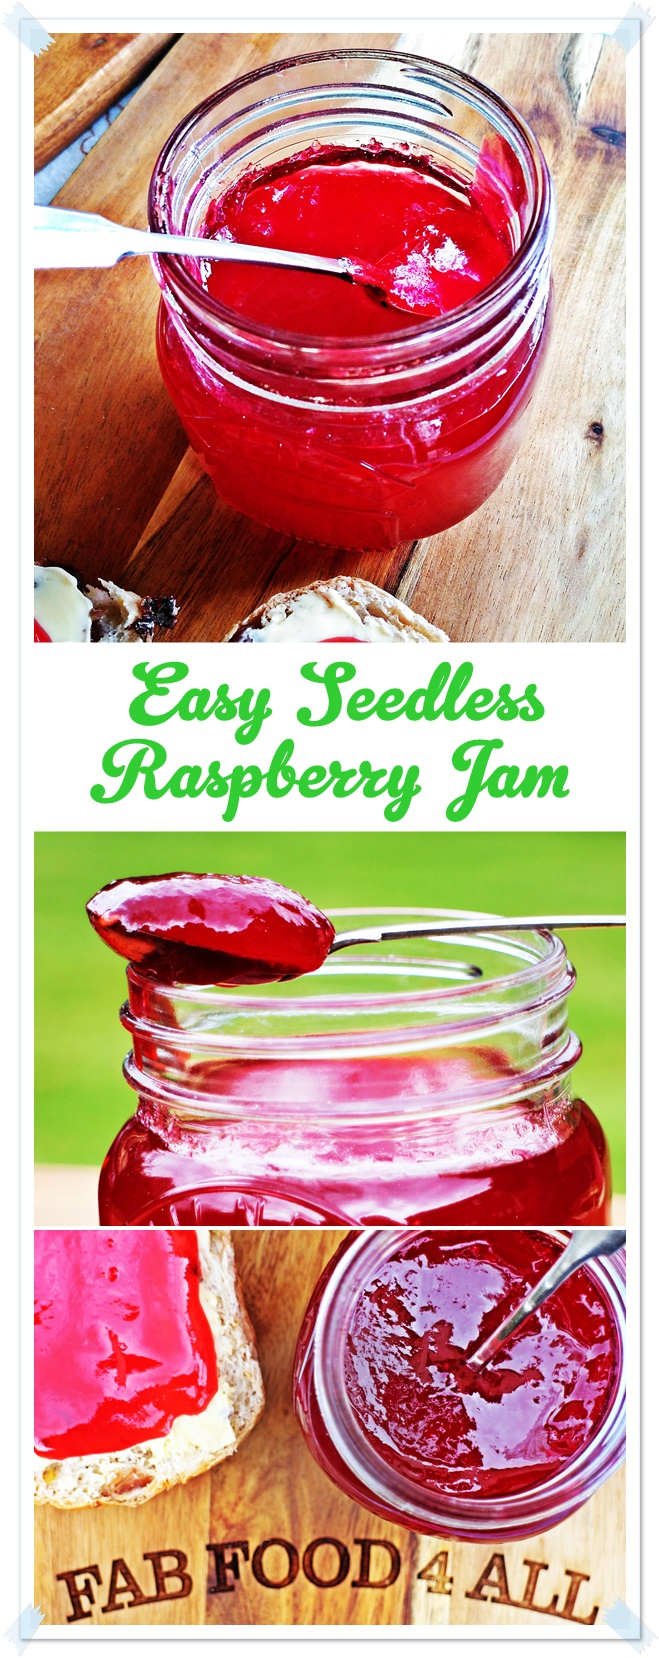 Easy Seedless Raspberry Jam - Fab Food 4 All